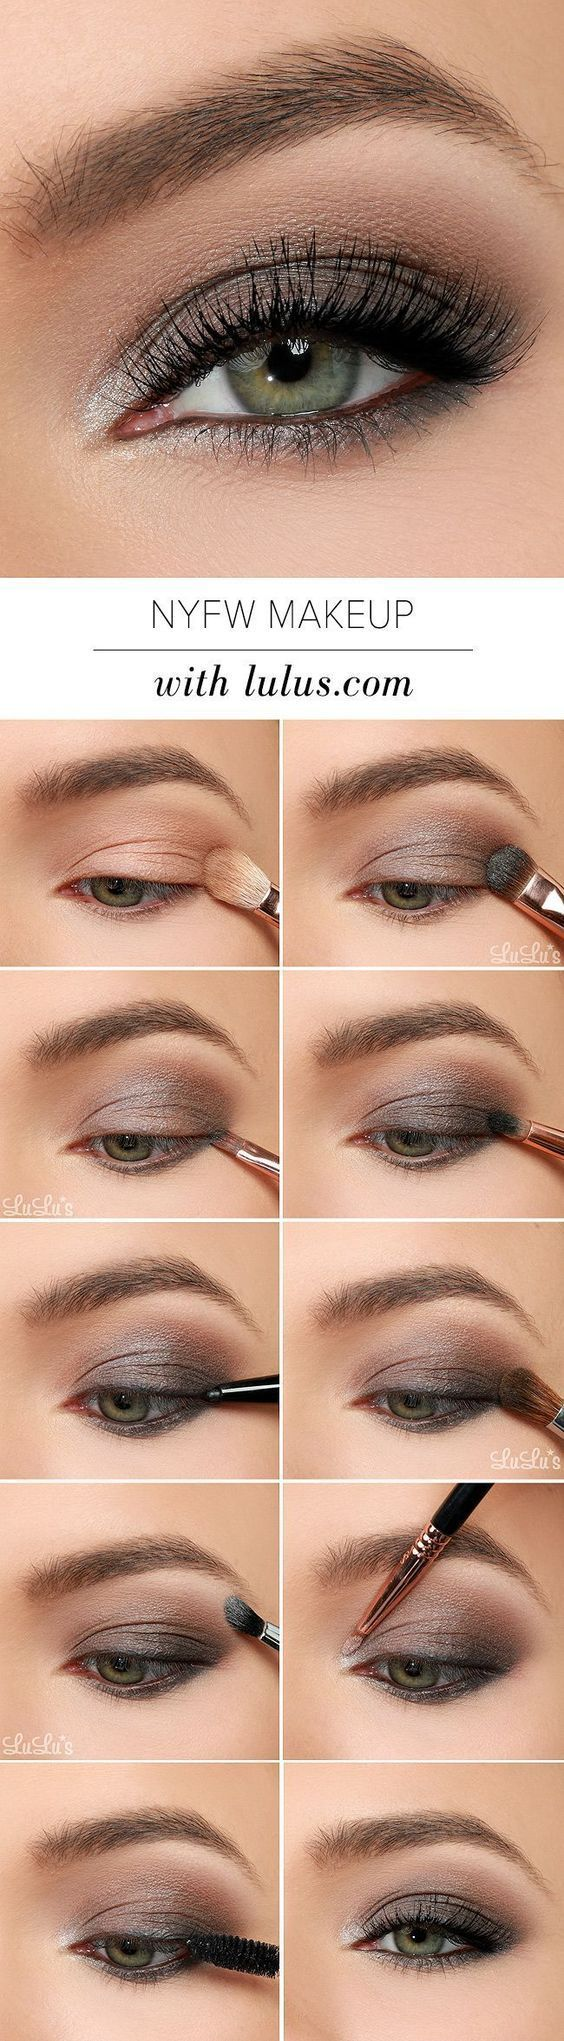 20 Amazing Eye Makeup Ideas For Every Occasion   > More Info:   makeupexclusiv.blogspot.com  